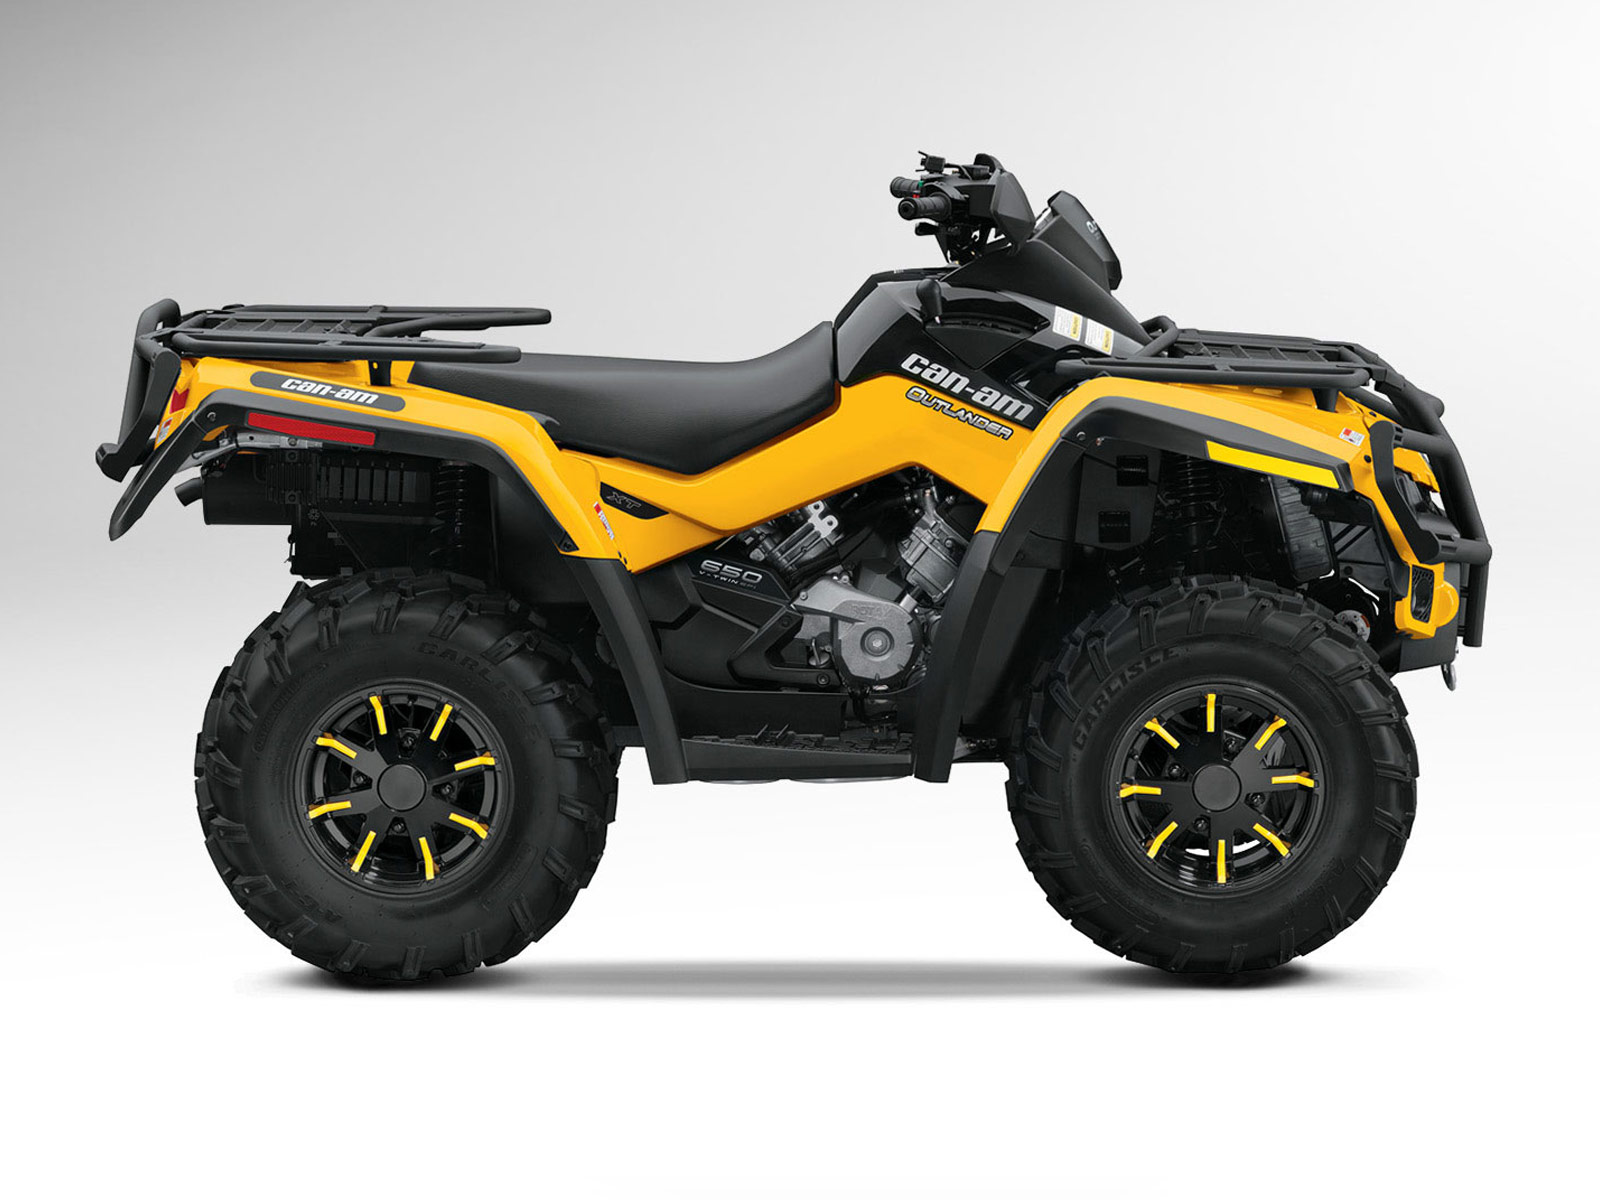 2012 Can Am Outlander 650XT ATV Insurance Information